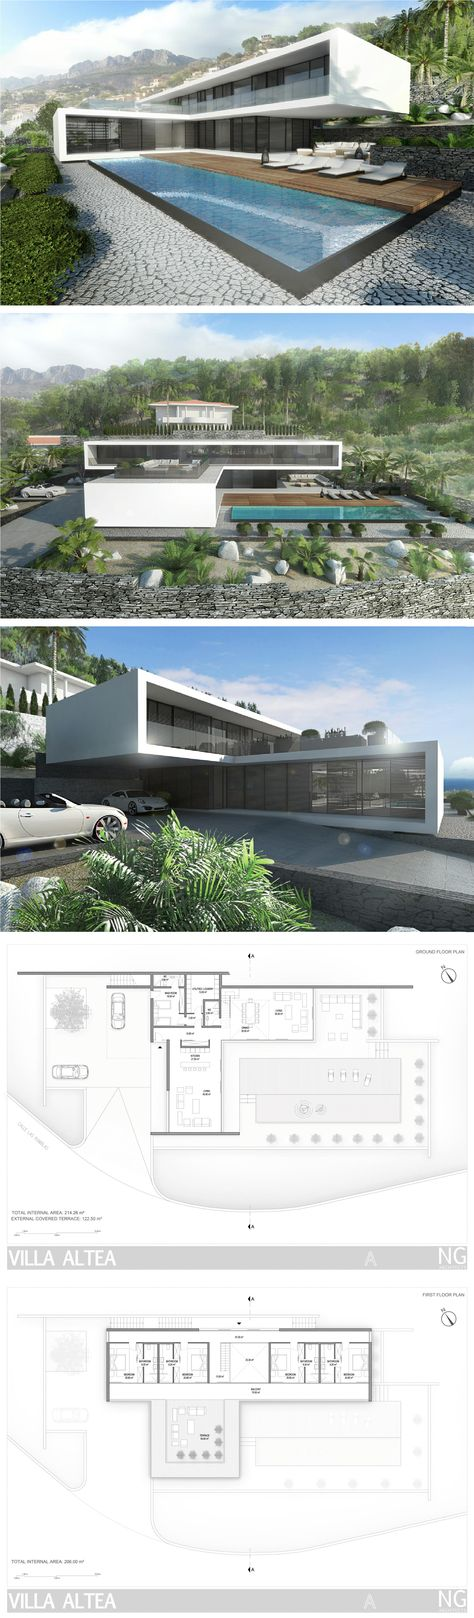 Une villa super moderne interior design, home decor, villas de - decoration villa de luxe